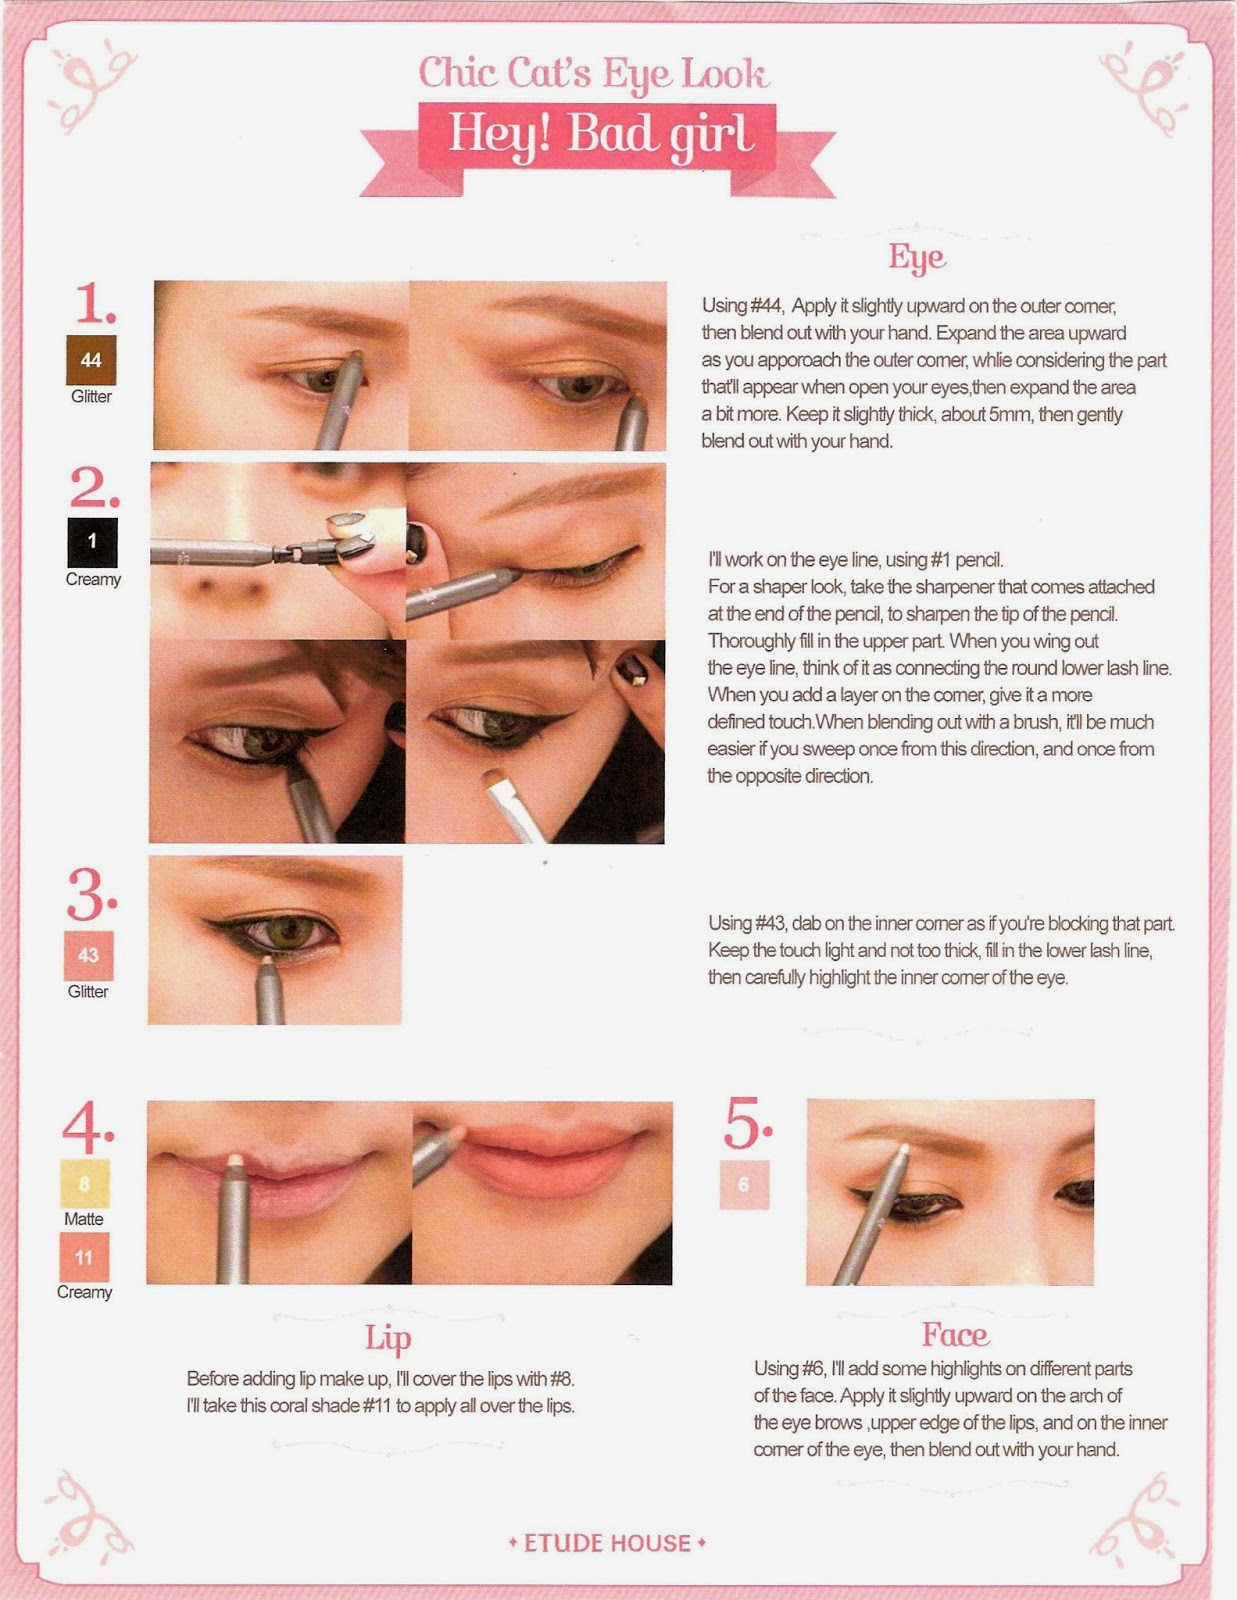 Rachel etude house june pink box this photo may also be useful for you to keep in case you ever decide to buy the pencils and achieve this look its a great easy tutorial baditri Gallery